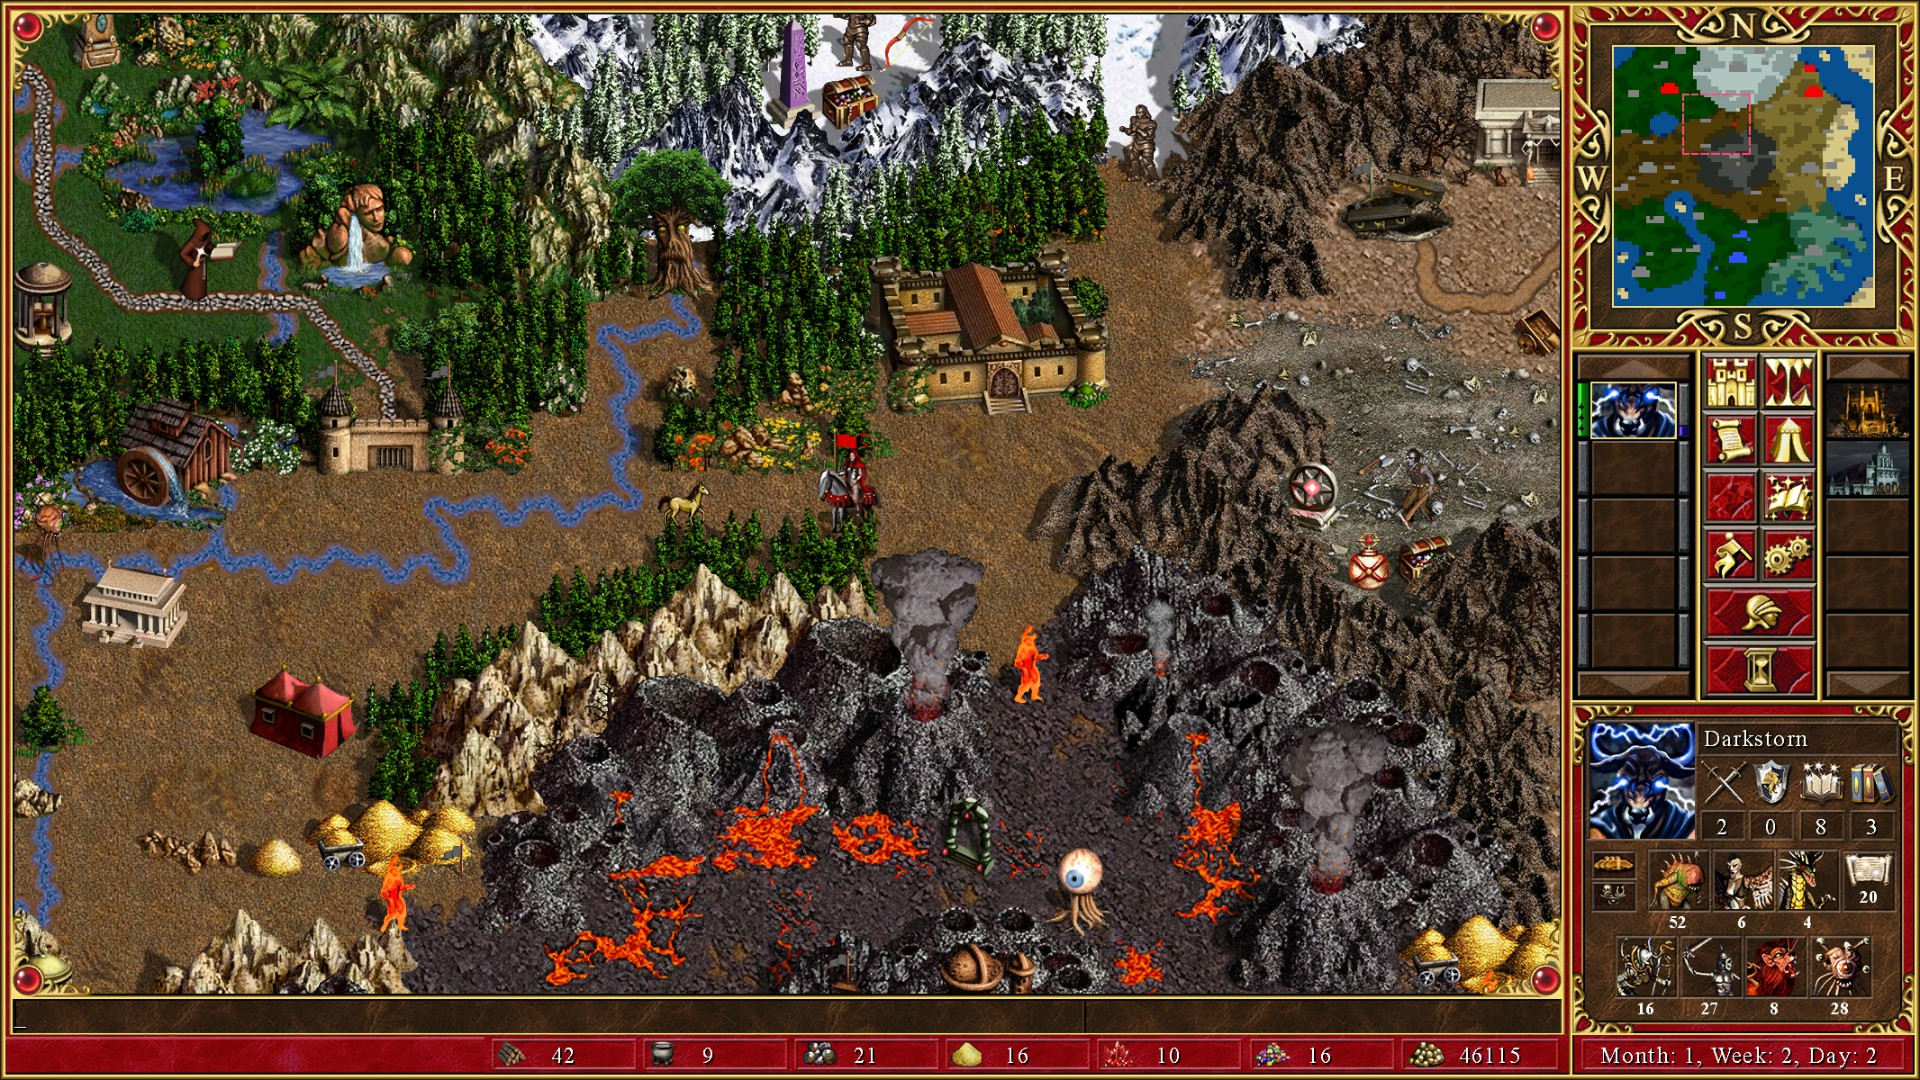 Heroes of Might and Magic III: Ostrze Armageddonu